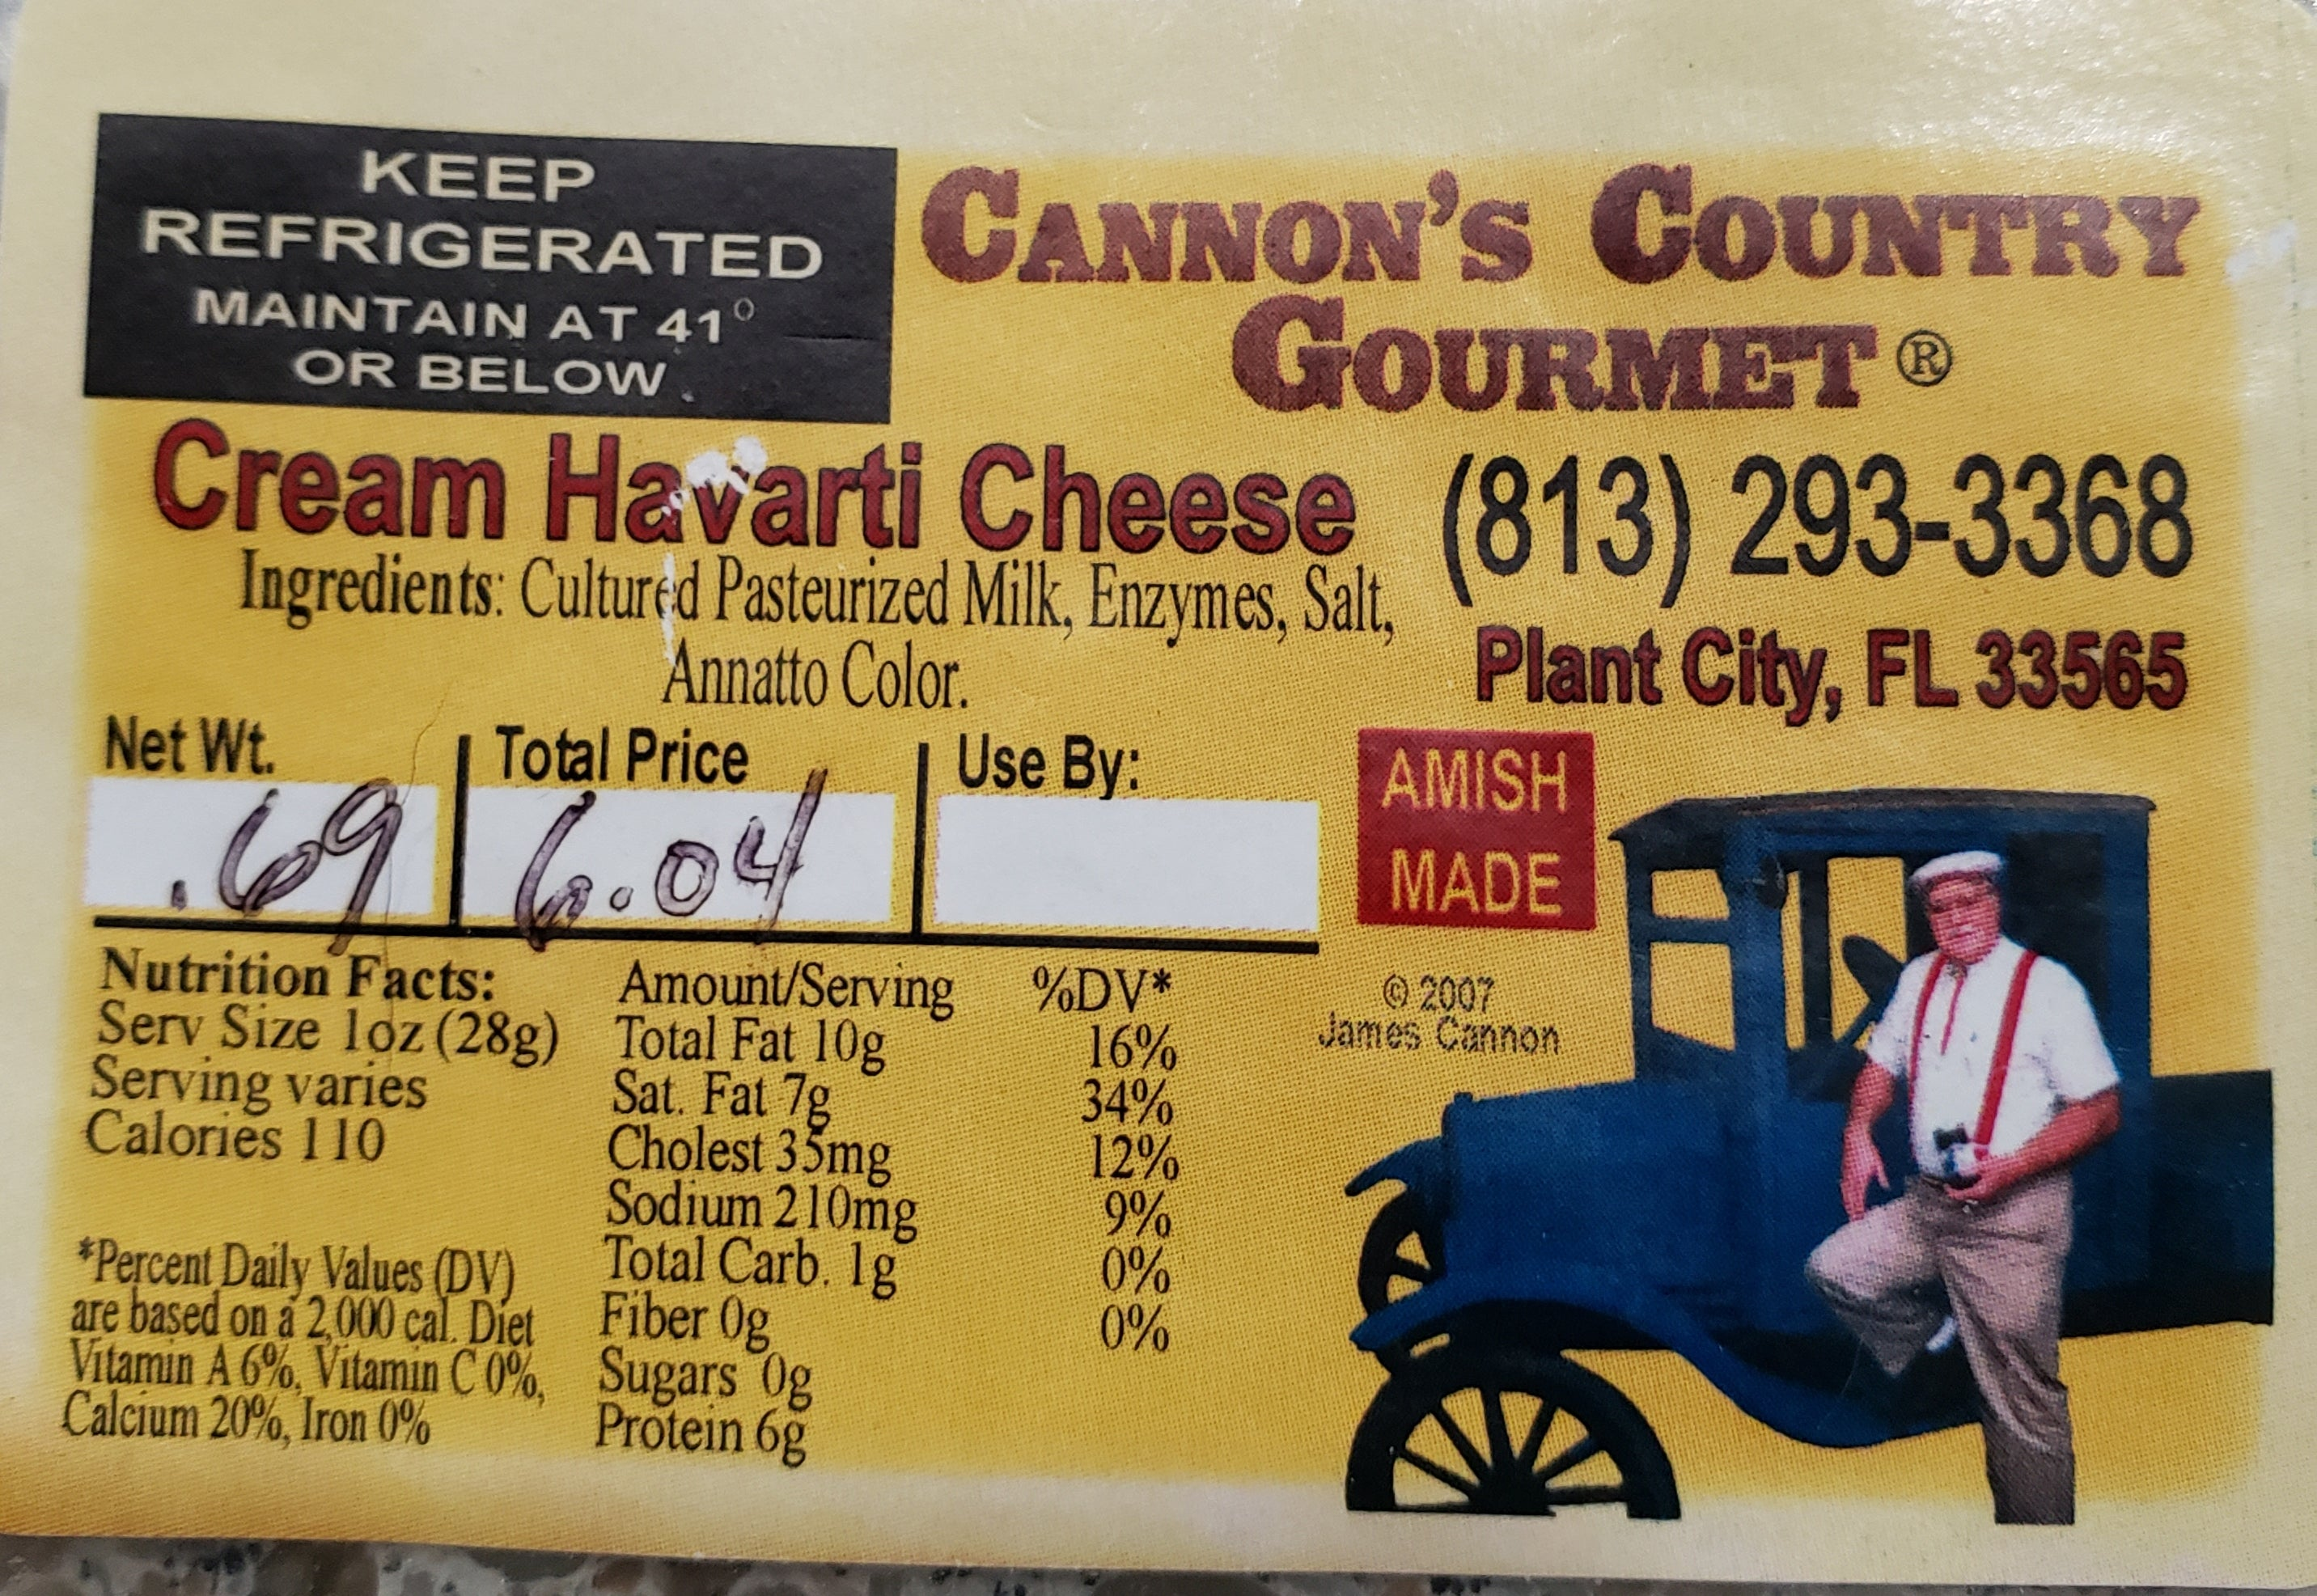 Cheese - Cream Havarti $4.03 per 1/2 lb.